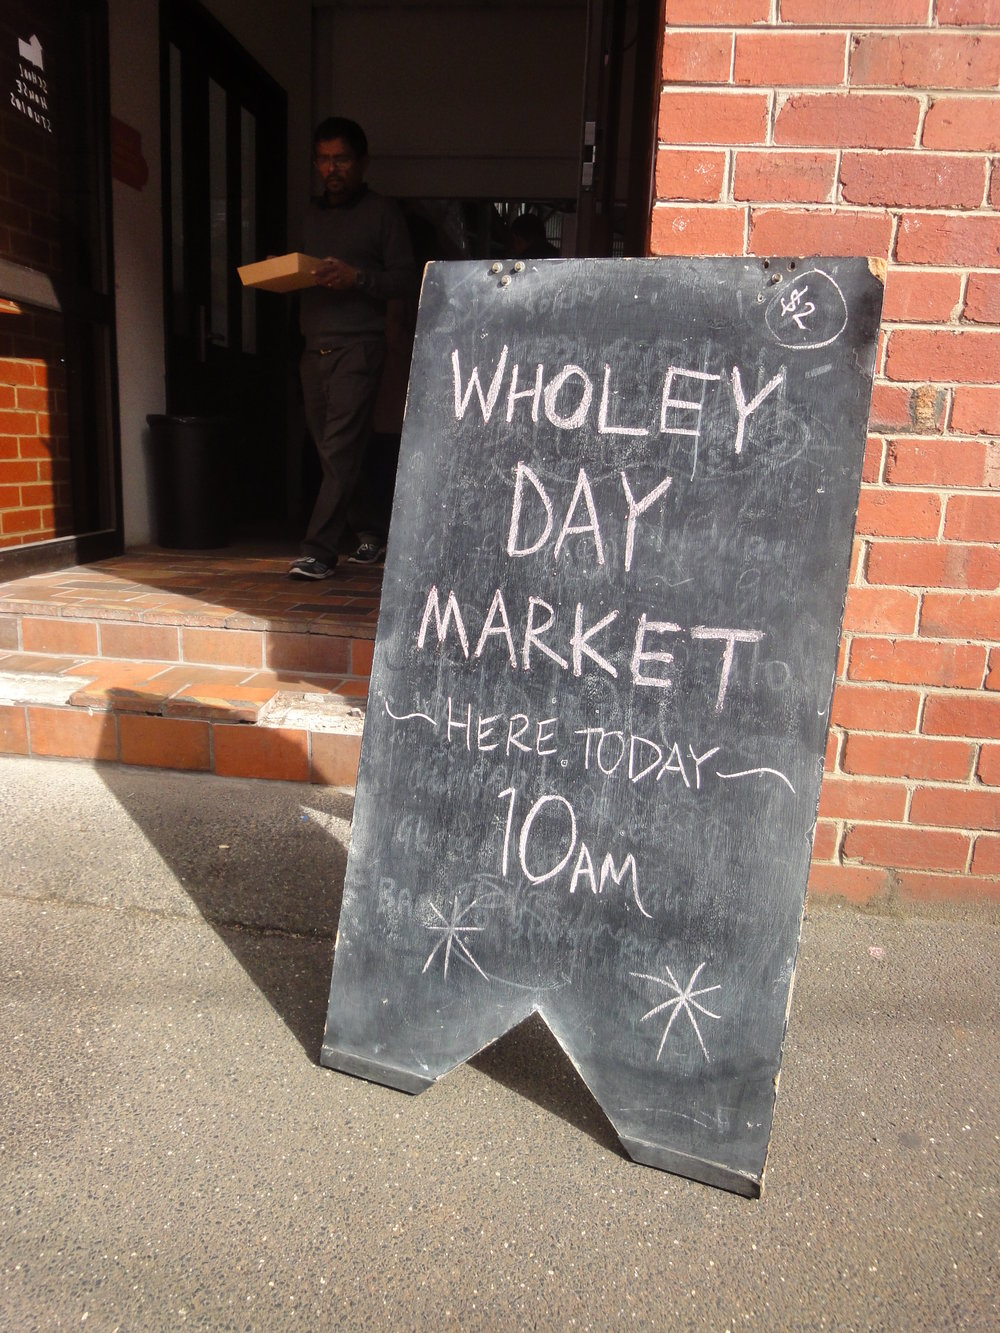 vegan gluten-free melbourne wholey day collingwood travel food australia